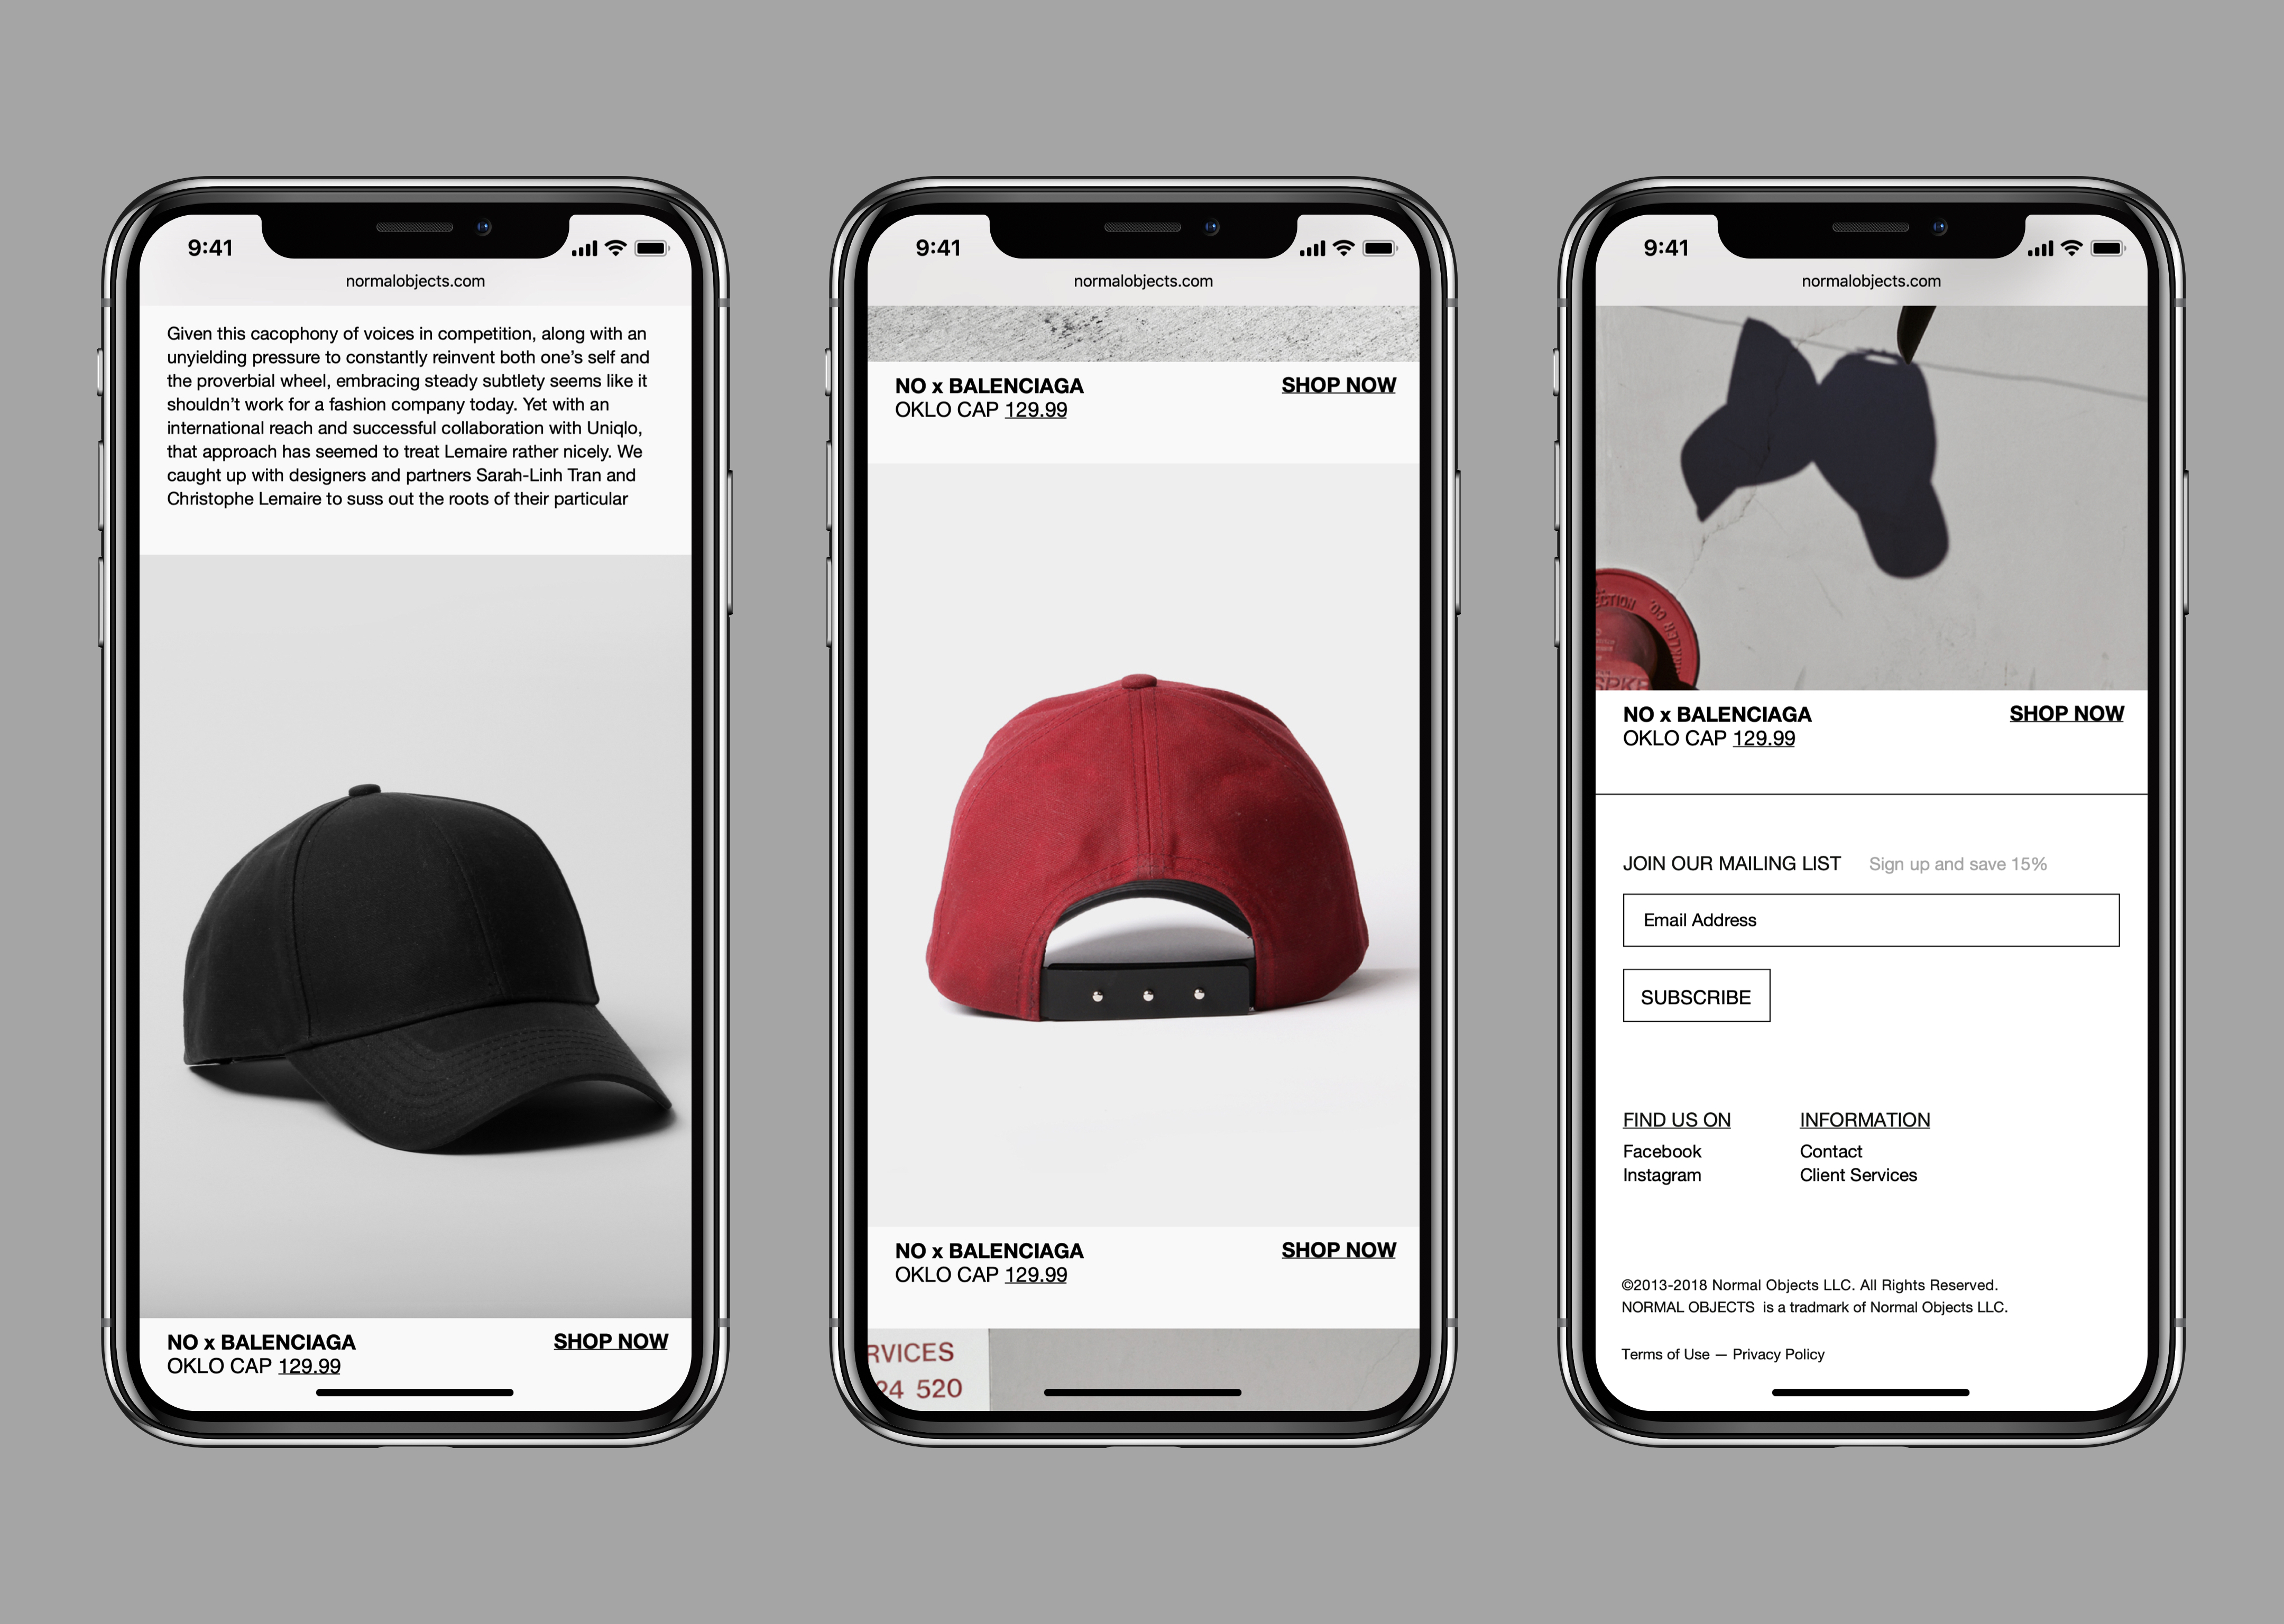 Normal_Objects_iphone_mockup-06